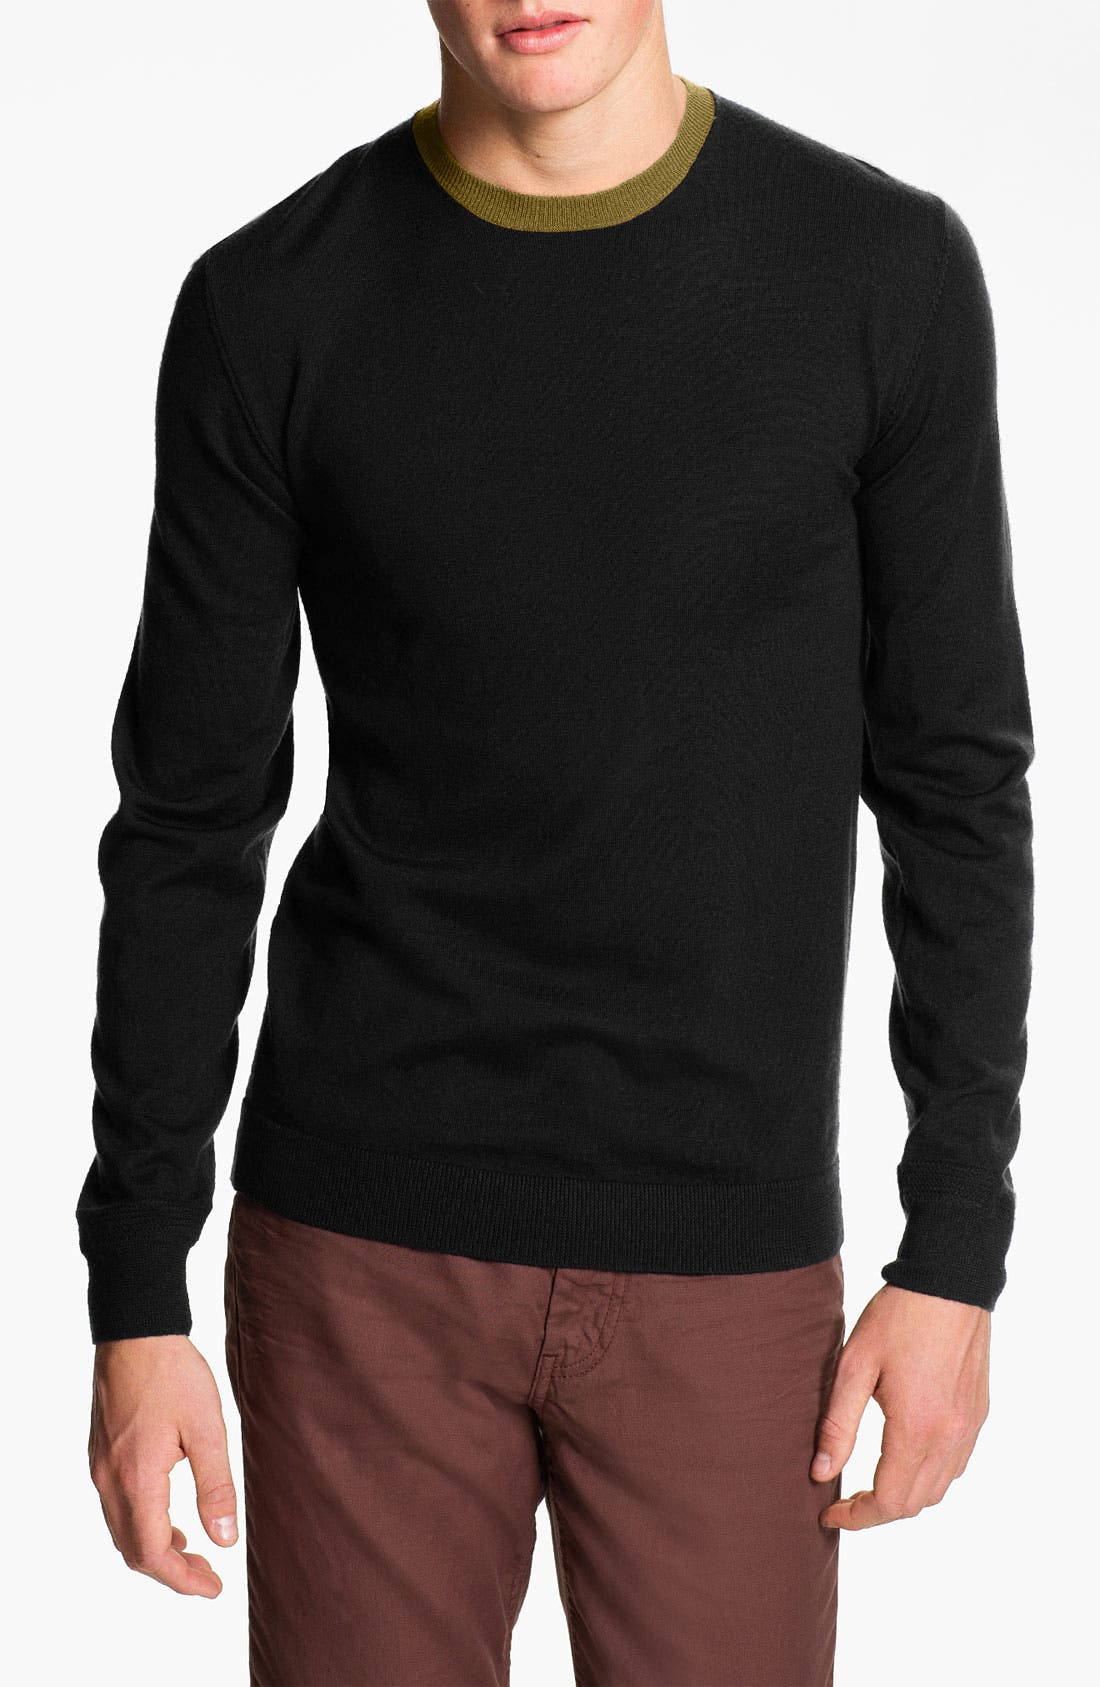 Alternate Image 1 Selected - MARC BY MARC JACOBS 'Ulrich' Merino Wool Crewneck Sweater